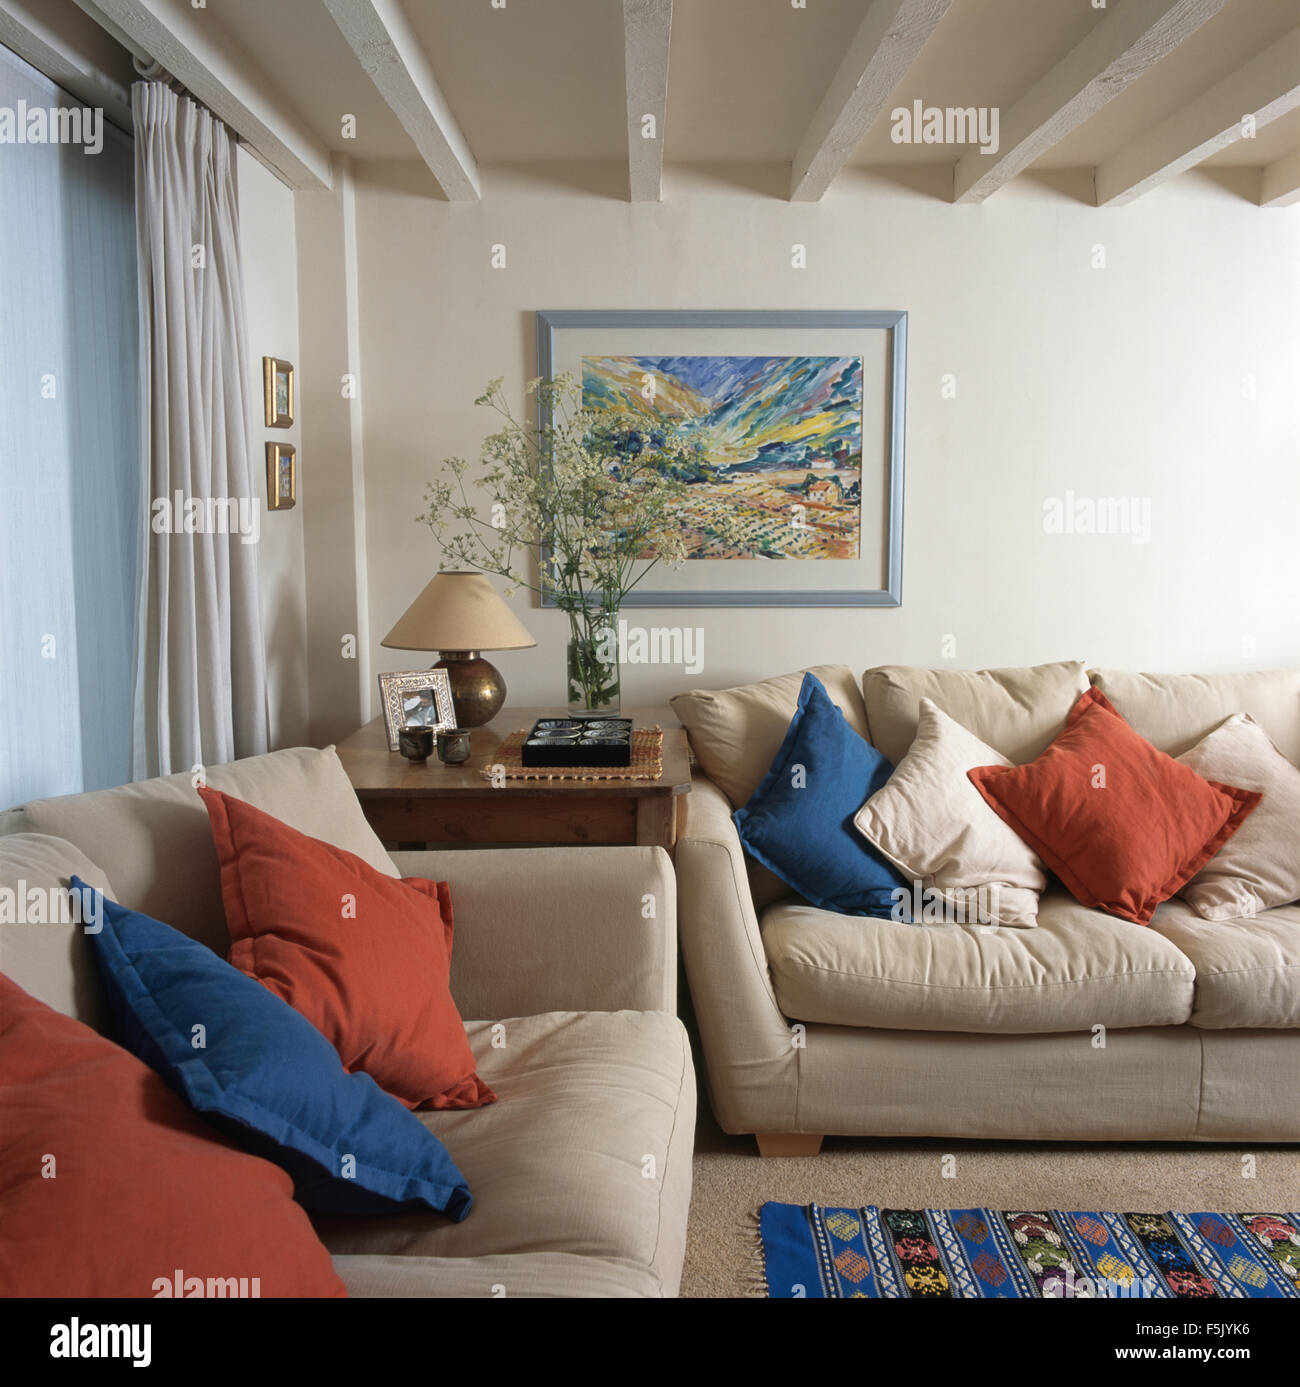 cushions living room interiors 2018 blue and red on cream sofas in a traditional with lime washed beamed ceiling